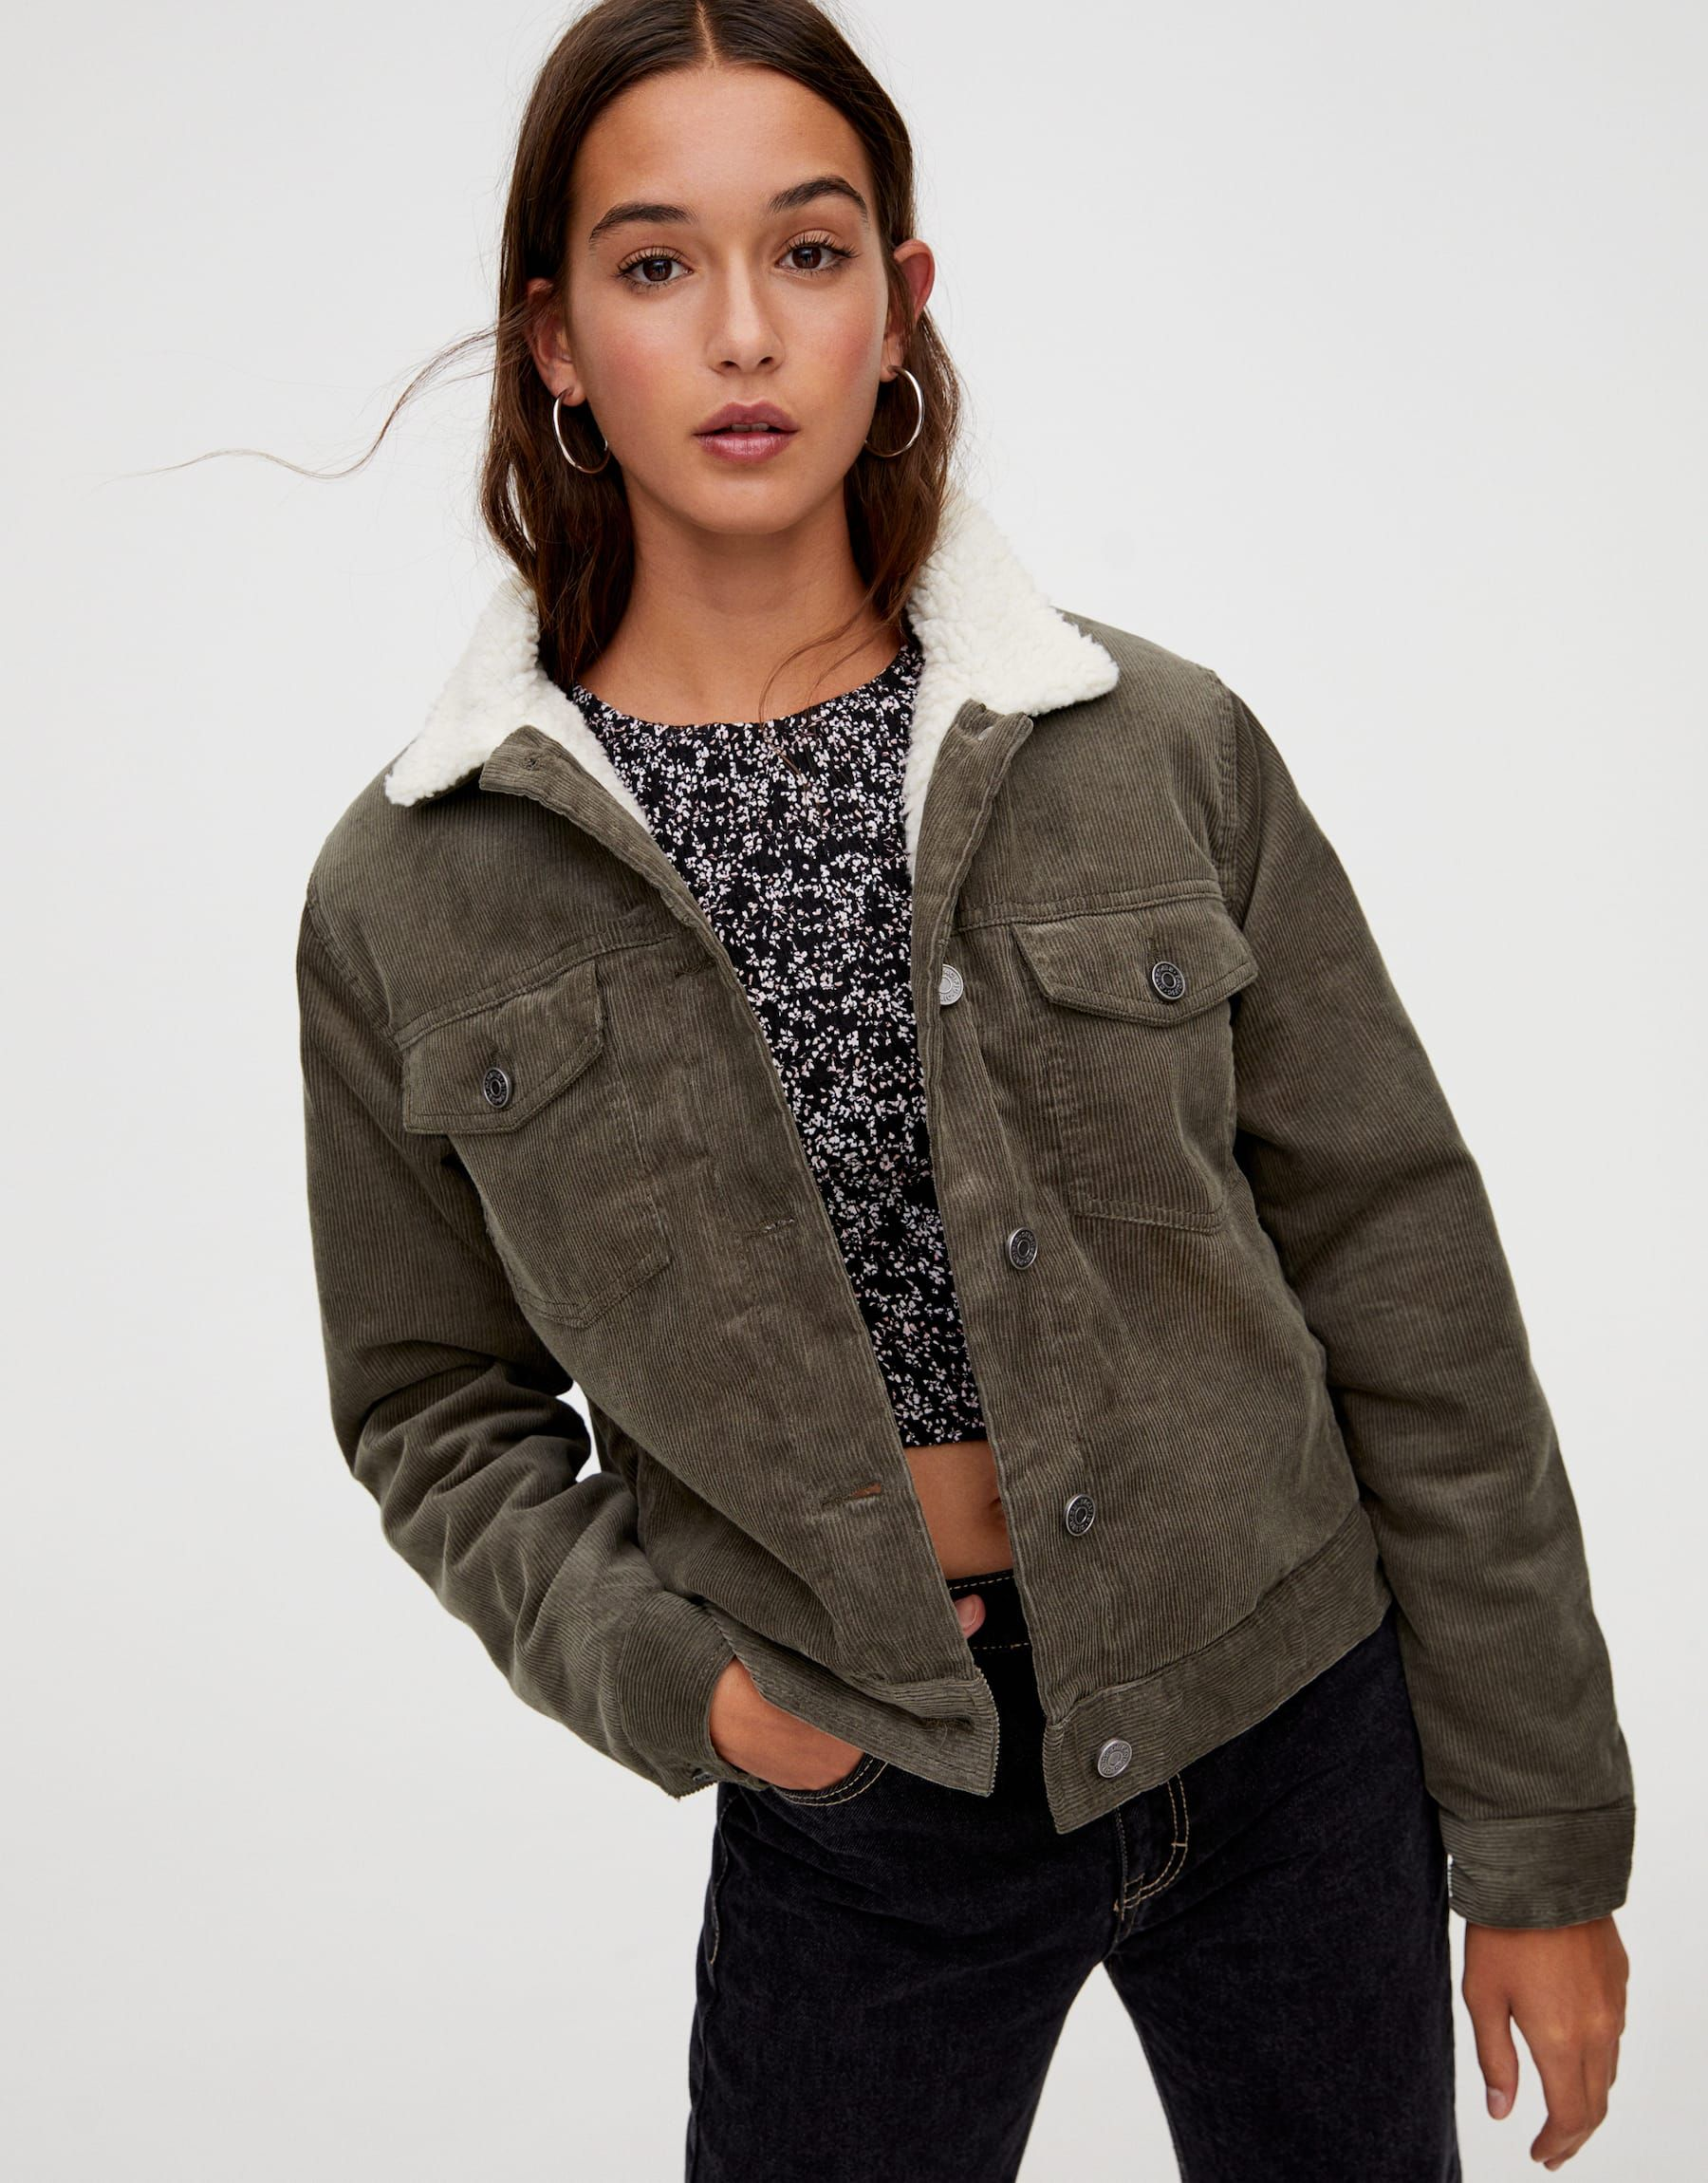 Short corduroy jacket with faux sheep wool pull&bear